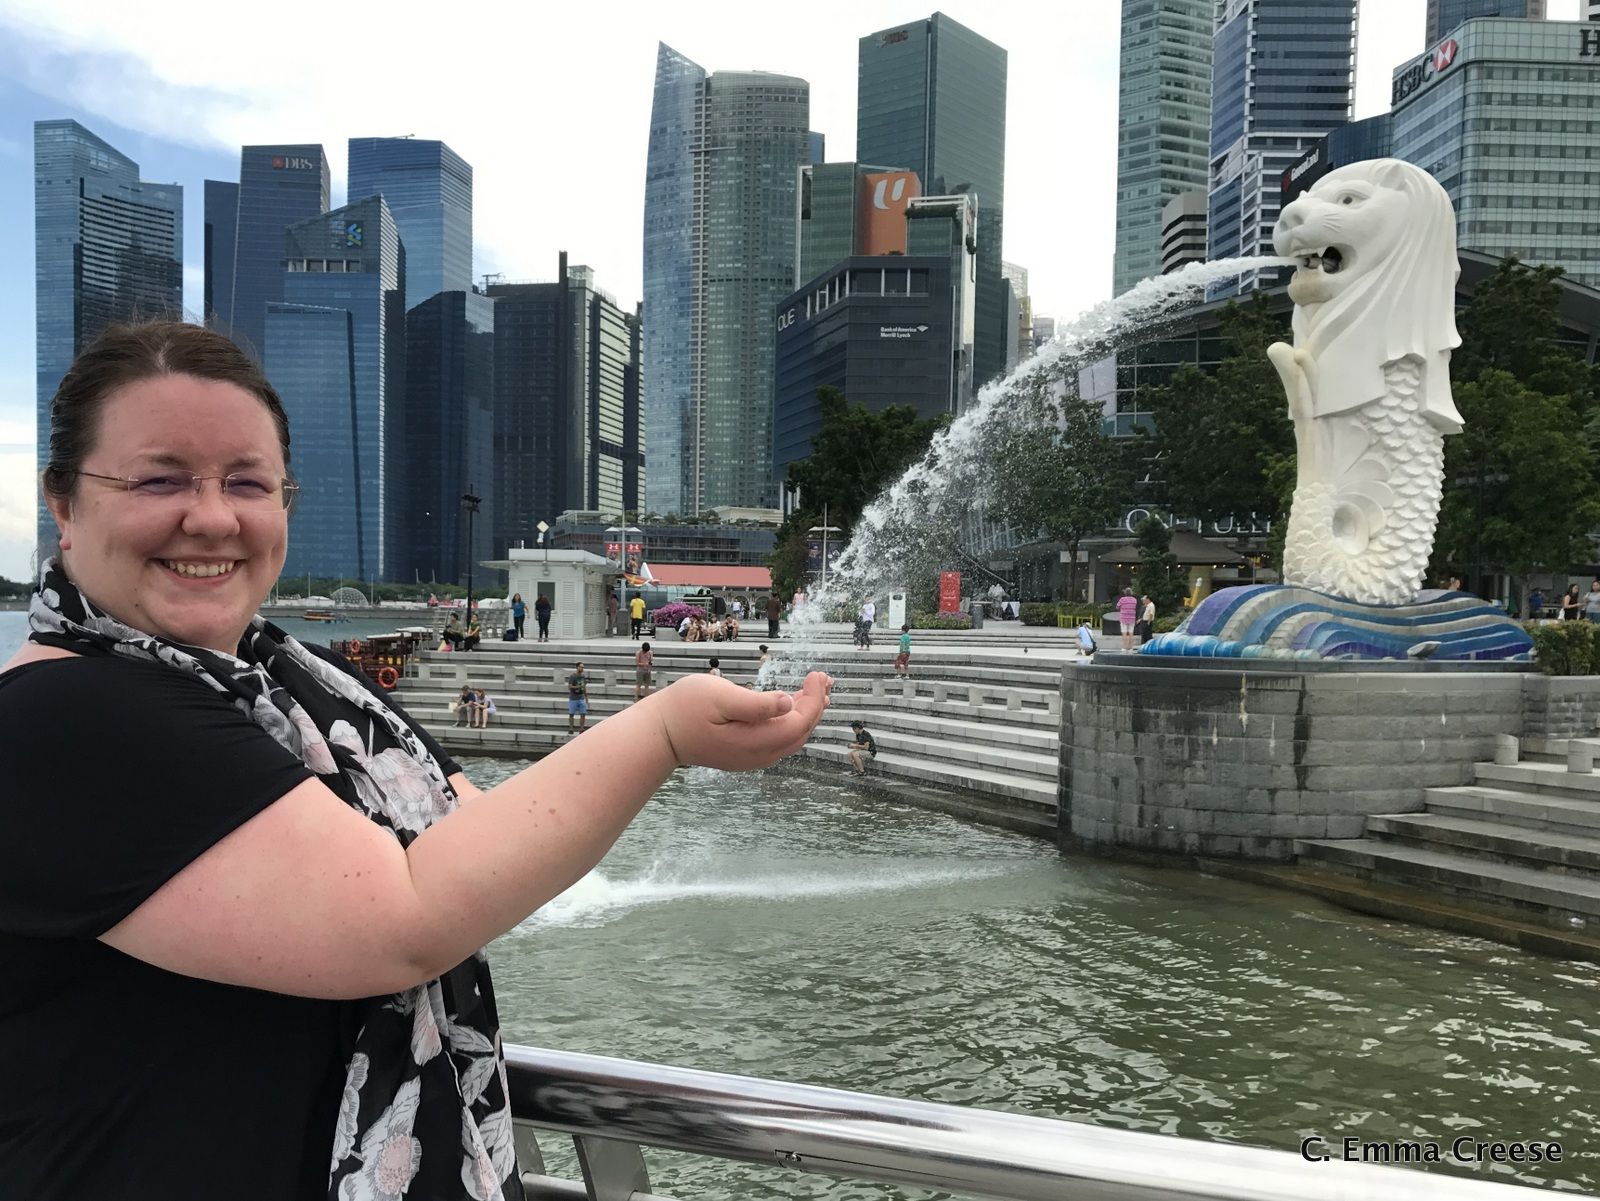 My travel journey - beginning in Singapore #travellinkup Adventures of a London Kiwi